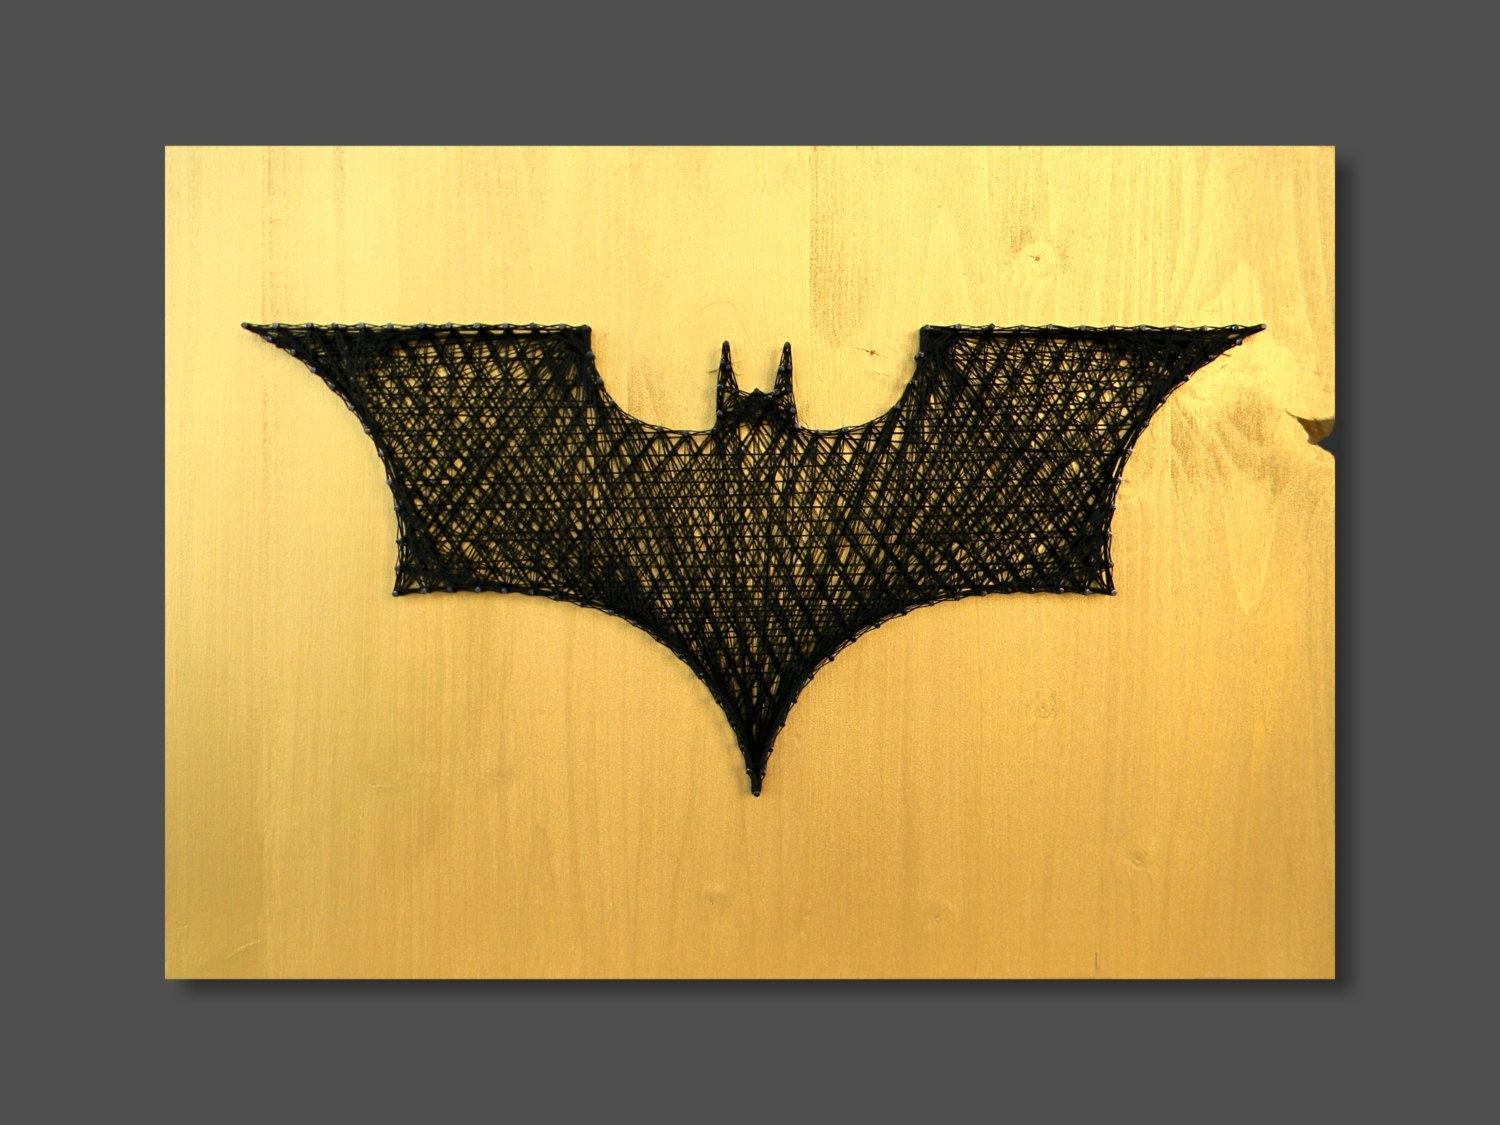 String Art Batman Wall Art Wall Decor Batman Decor Logo Batman Intended For Most Recently Released Batman Wall Art (Gallery 8 of 20)